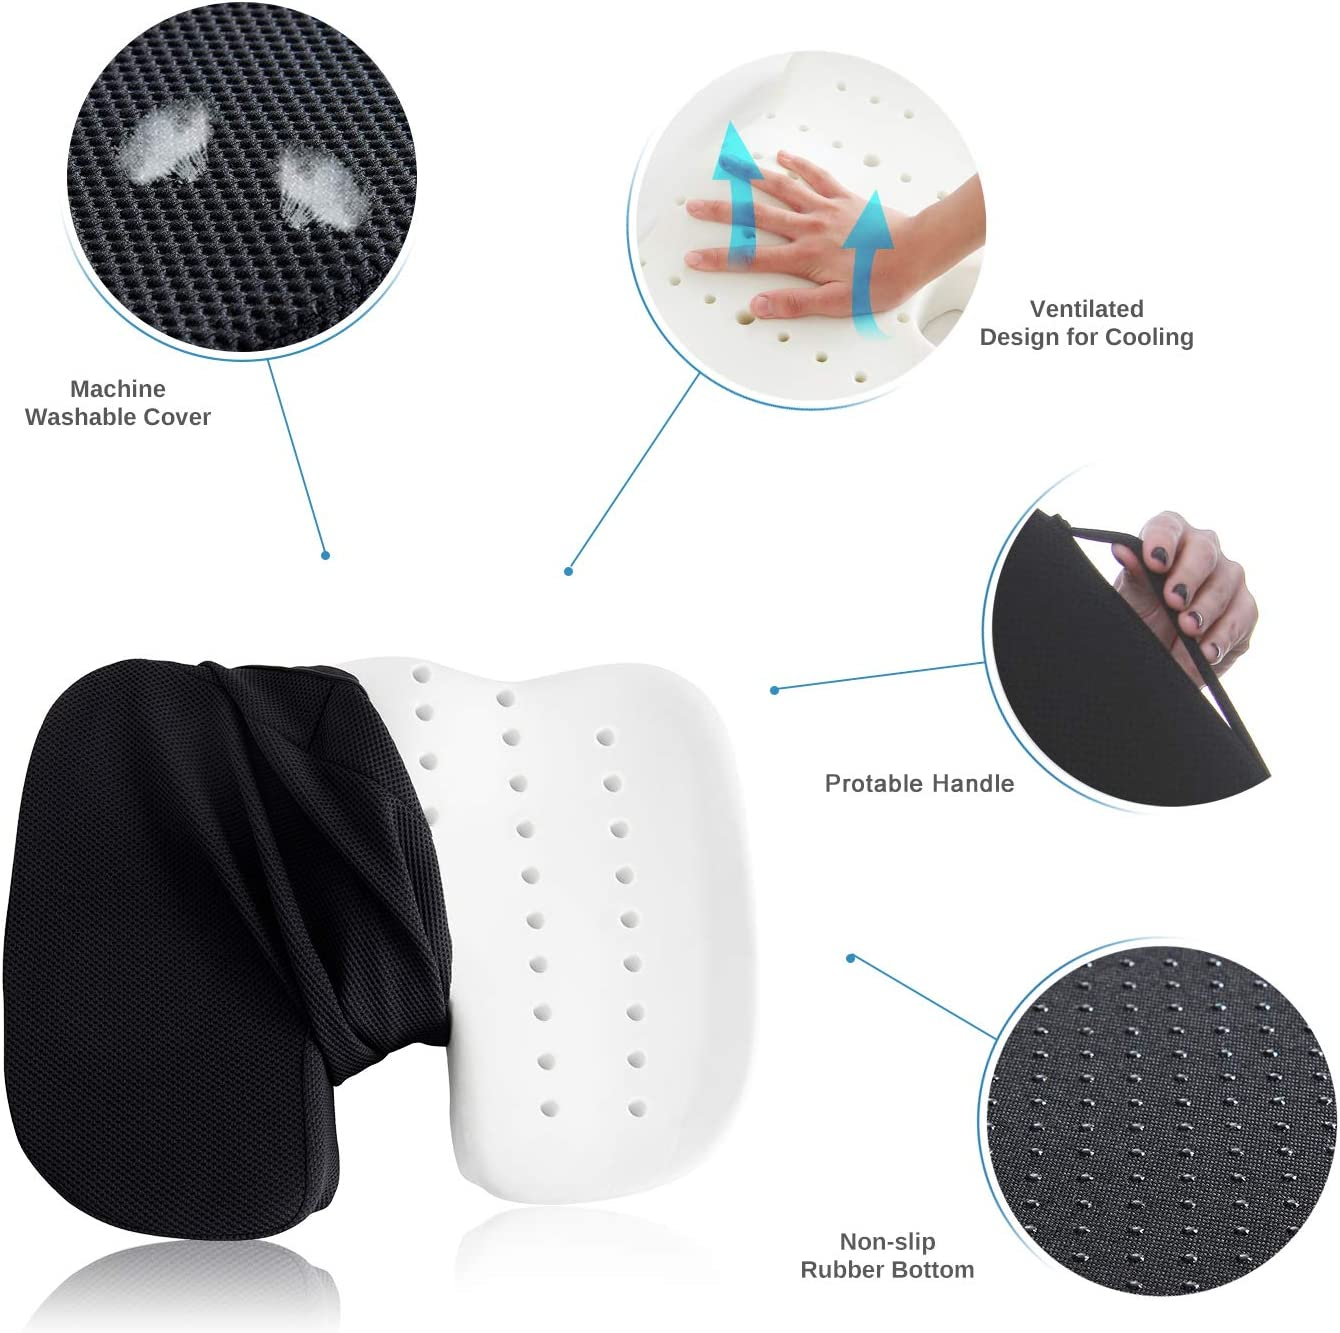 Coccyx Seat Cushion Orthopedic Memory Foam Seat Cushion for Car Office Wheelchair desk, Comfort Chair Tailbone Pillow, Ventilated Designed for Hip Back Sciatica Pain Relief,Non-Slip Portable black